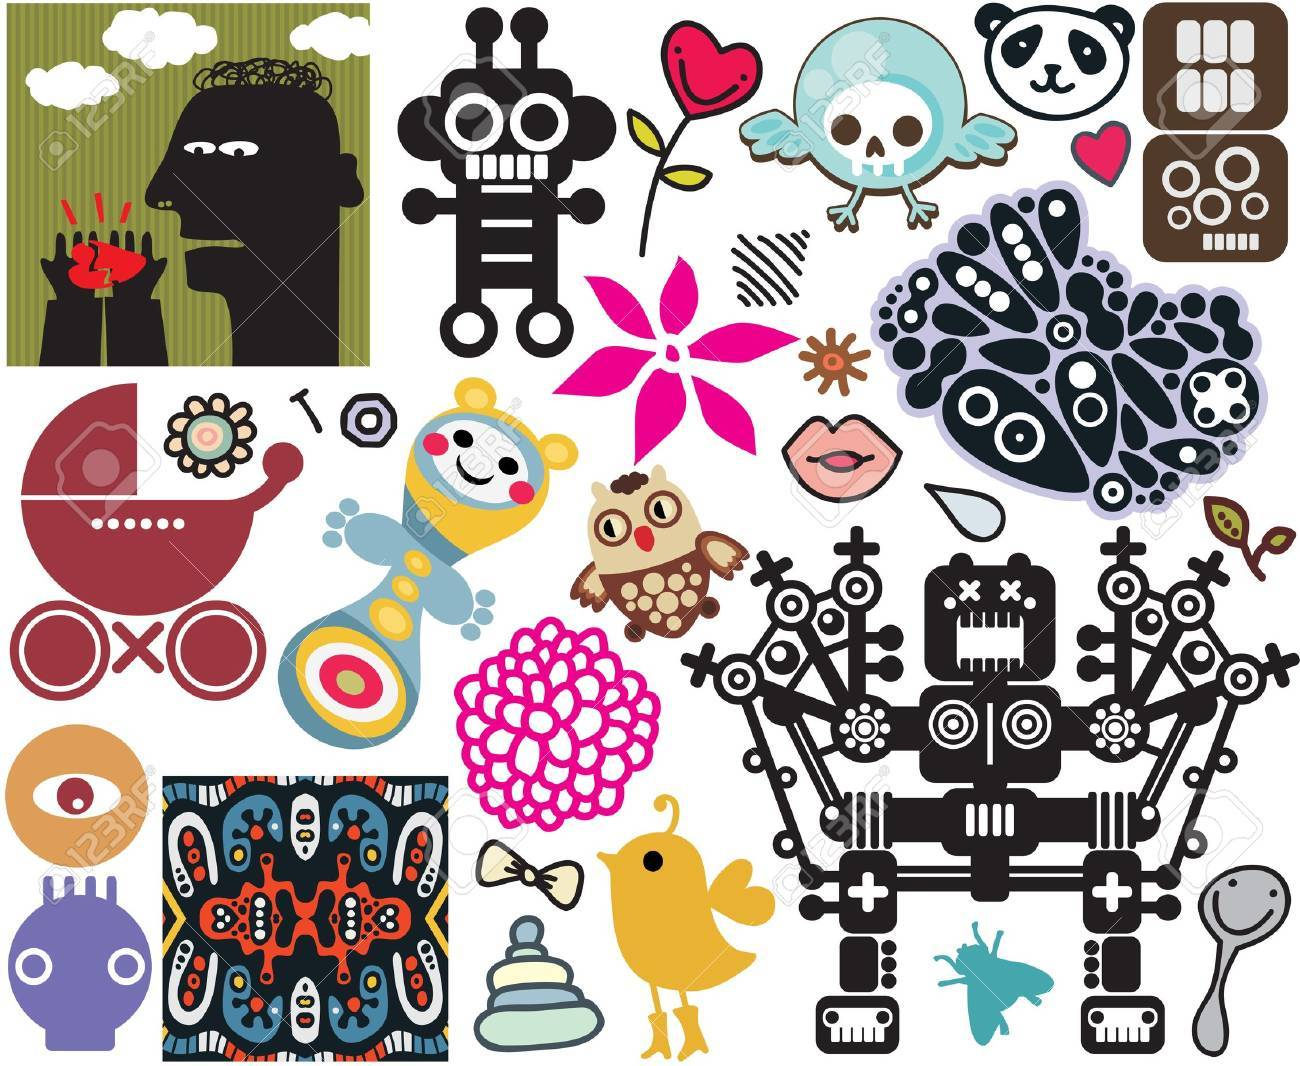 Mix of different vector images and icons. vol.45 Stock Vector - 12820463